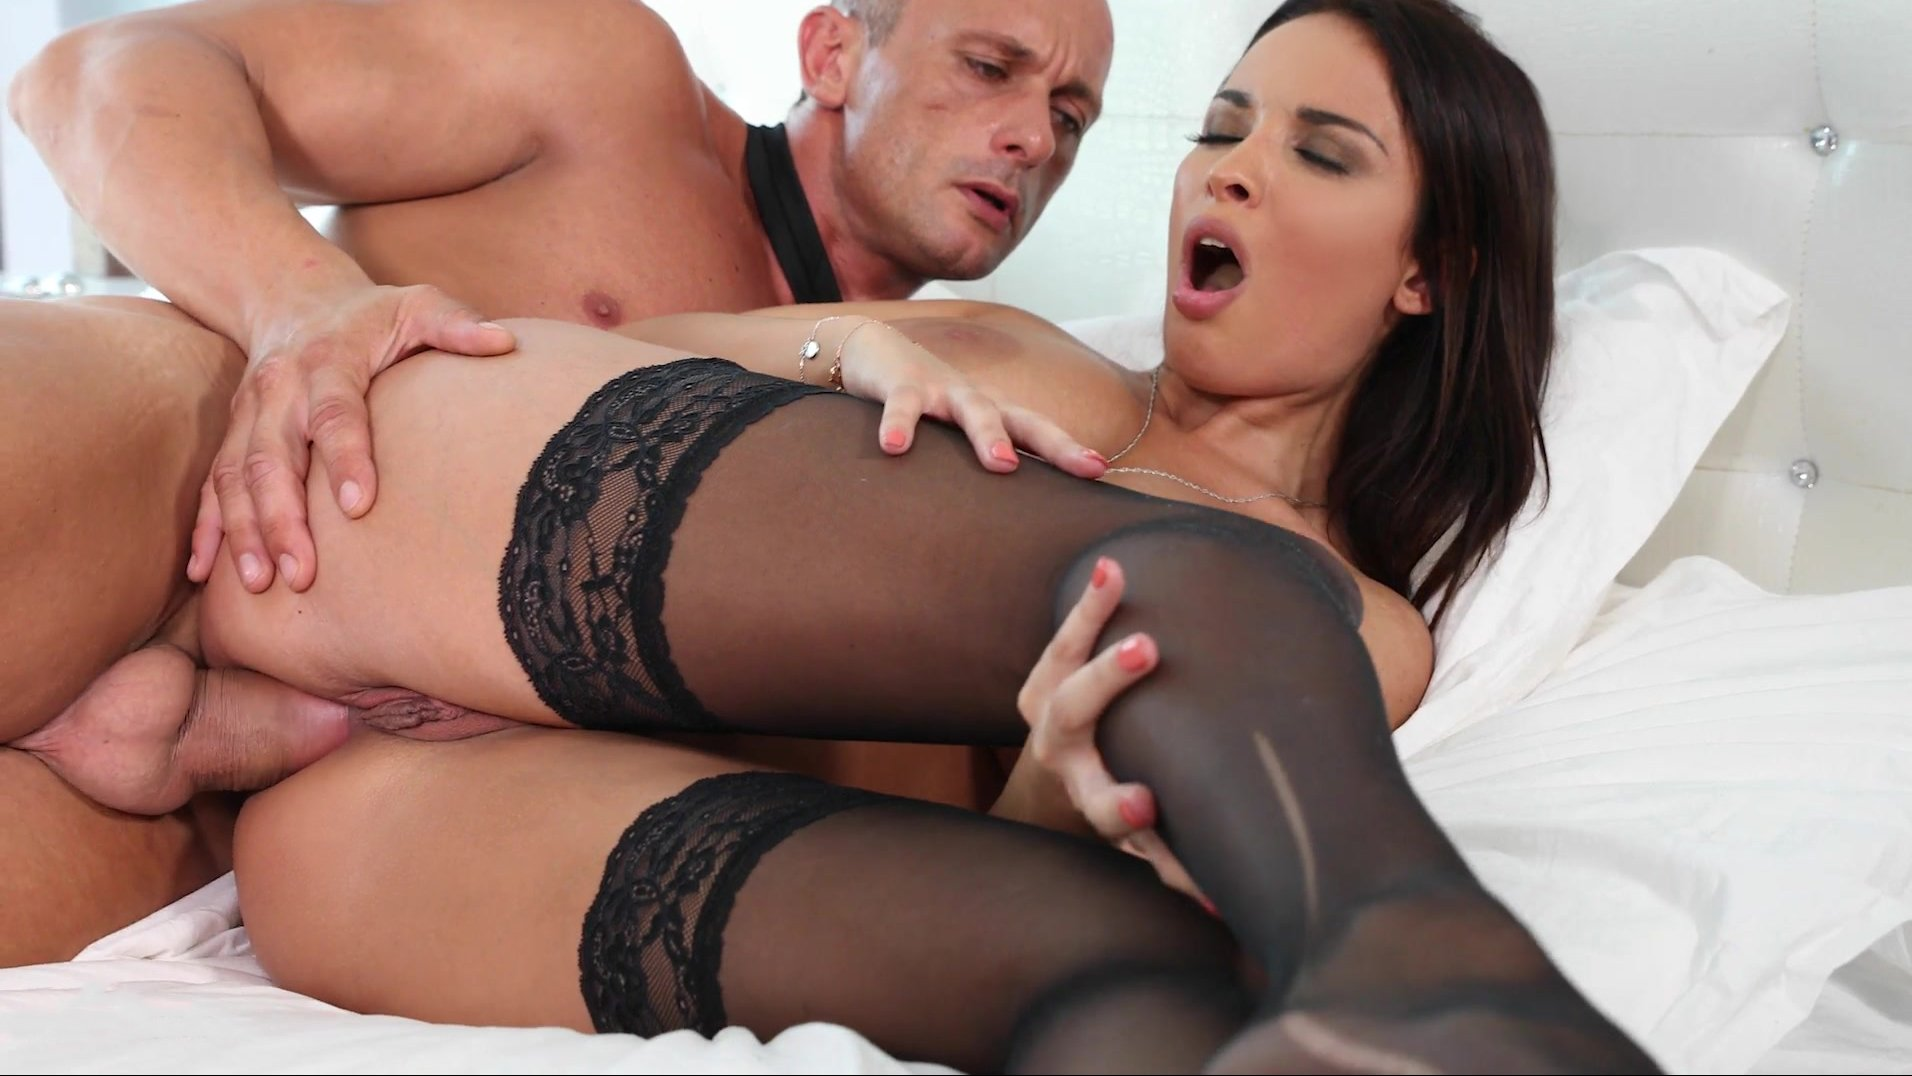 Black stockings and big tits make a guy for hot sex